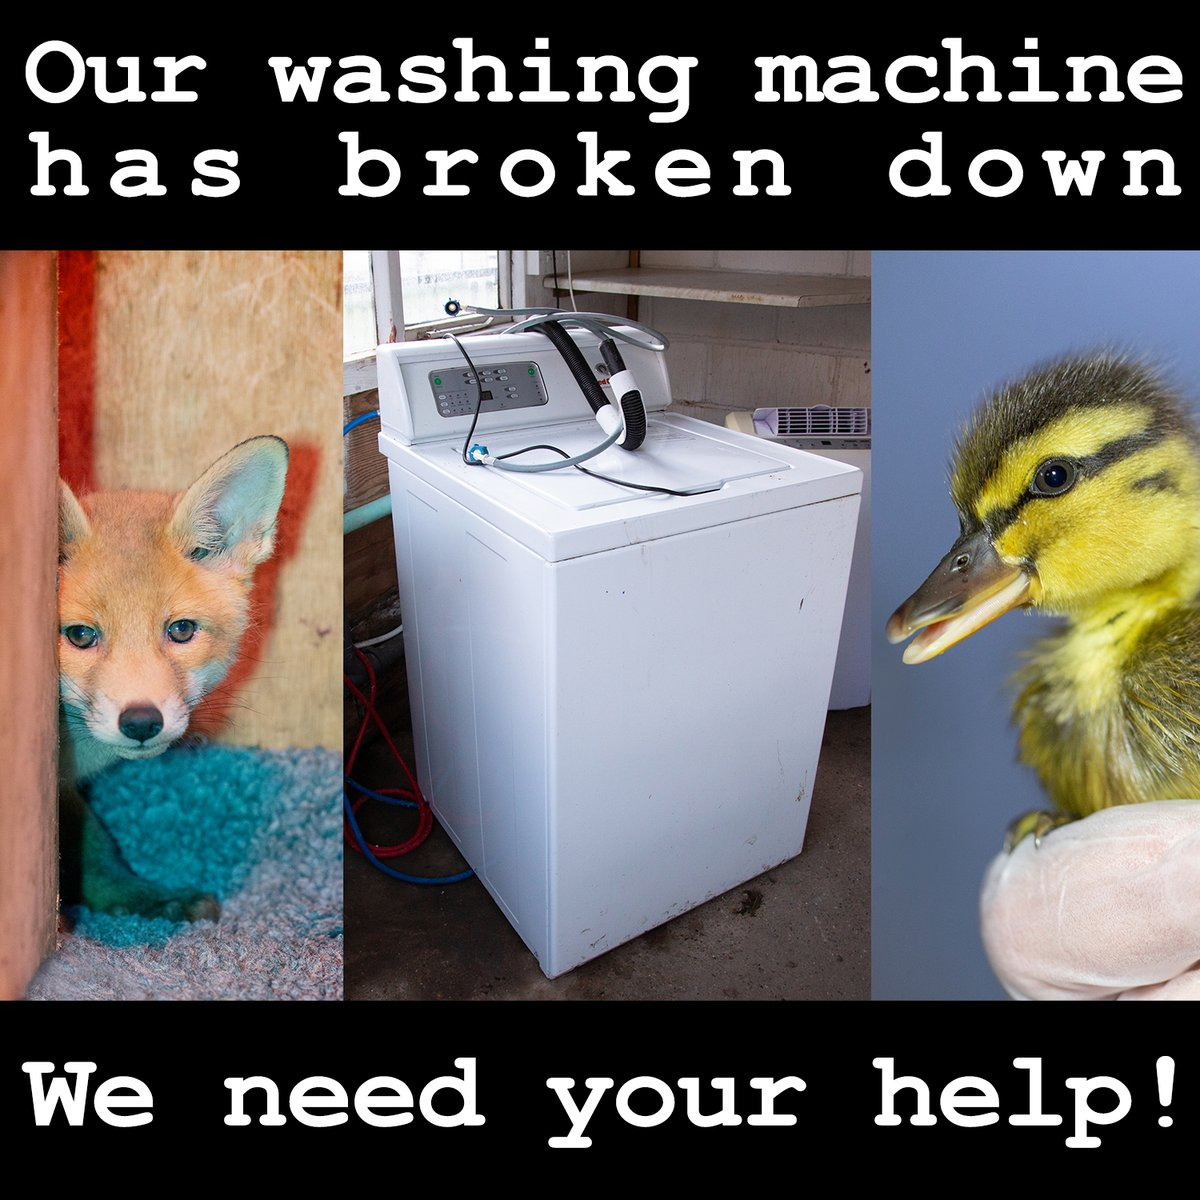 They say bad news comes in groups, and it seems BOTH of our washing machines have broken down in just a few days!  With a LOT of bedding, nests, soft toys and more needing to be kept clean, we need your help!   If you would like to support us, please visit